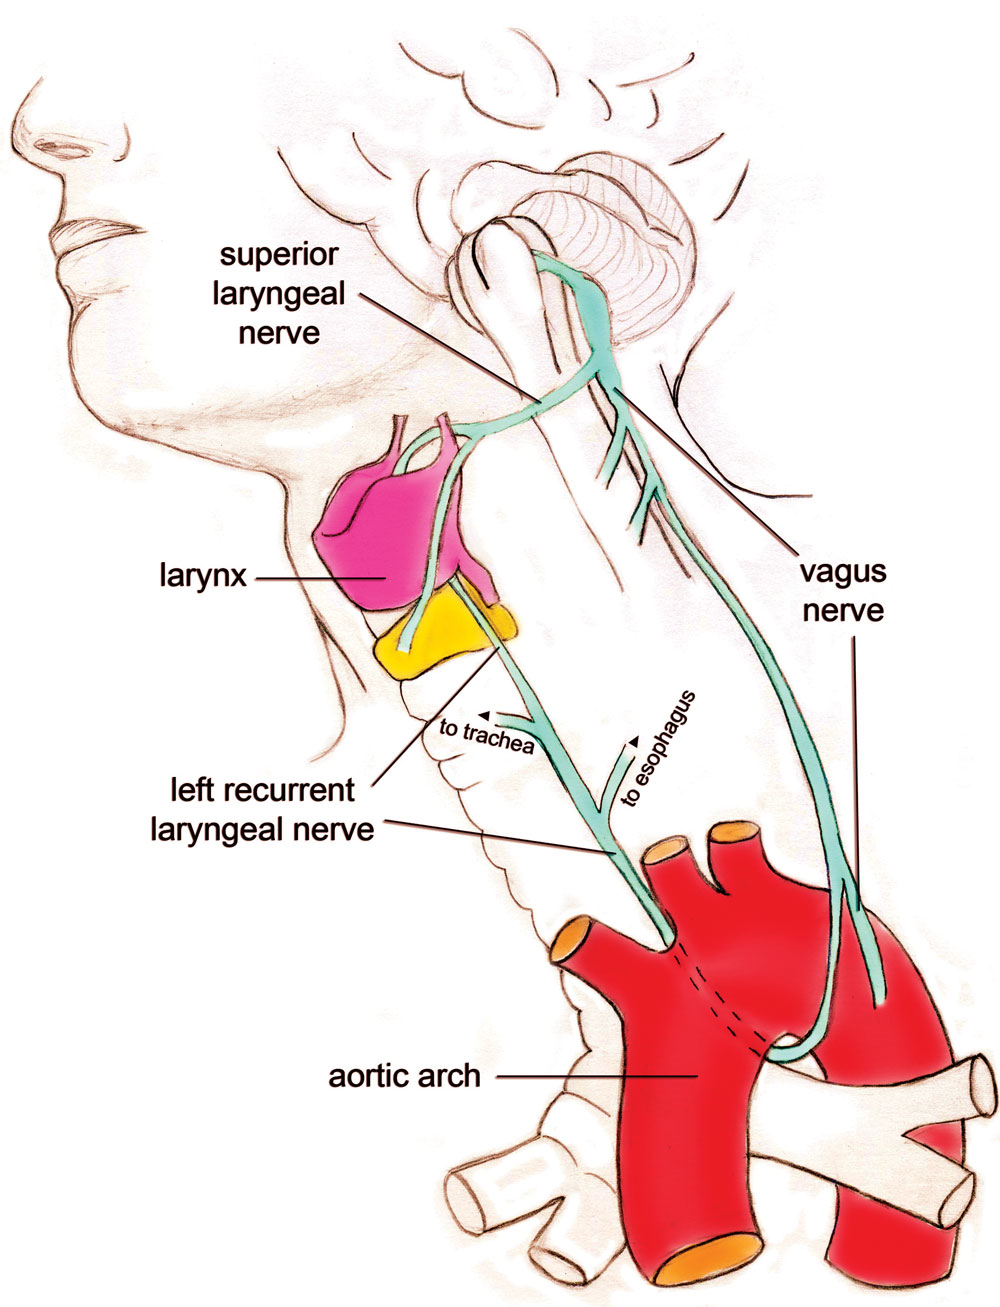 Recurrent laryngeal nerve design - creation.com